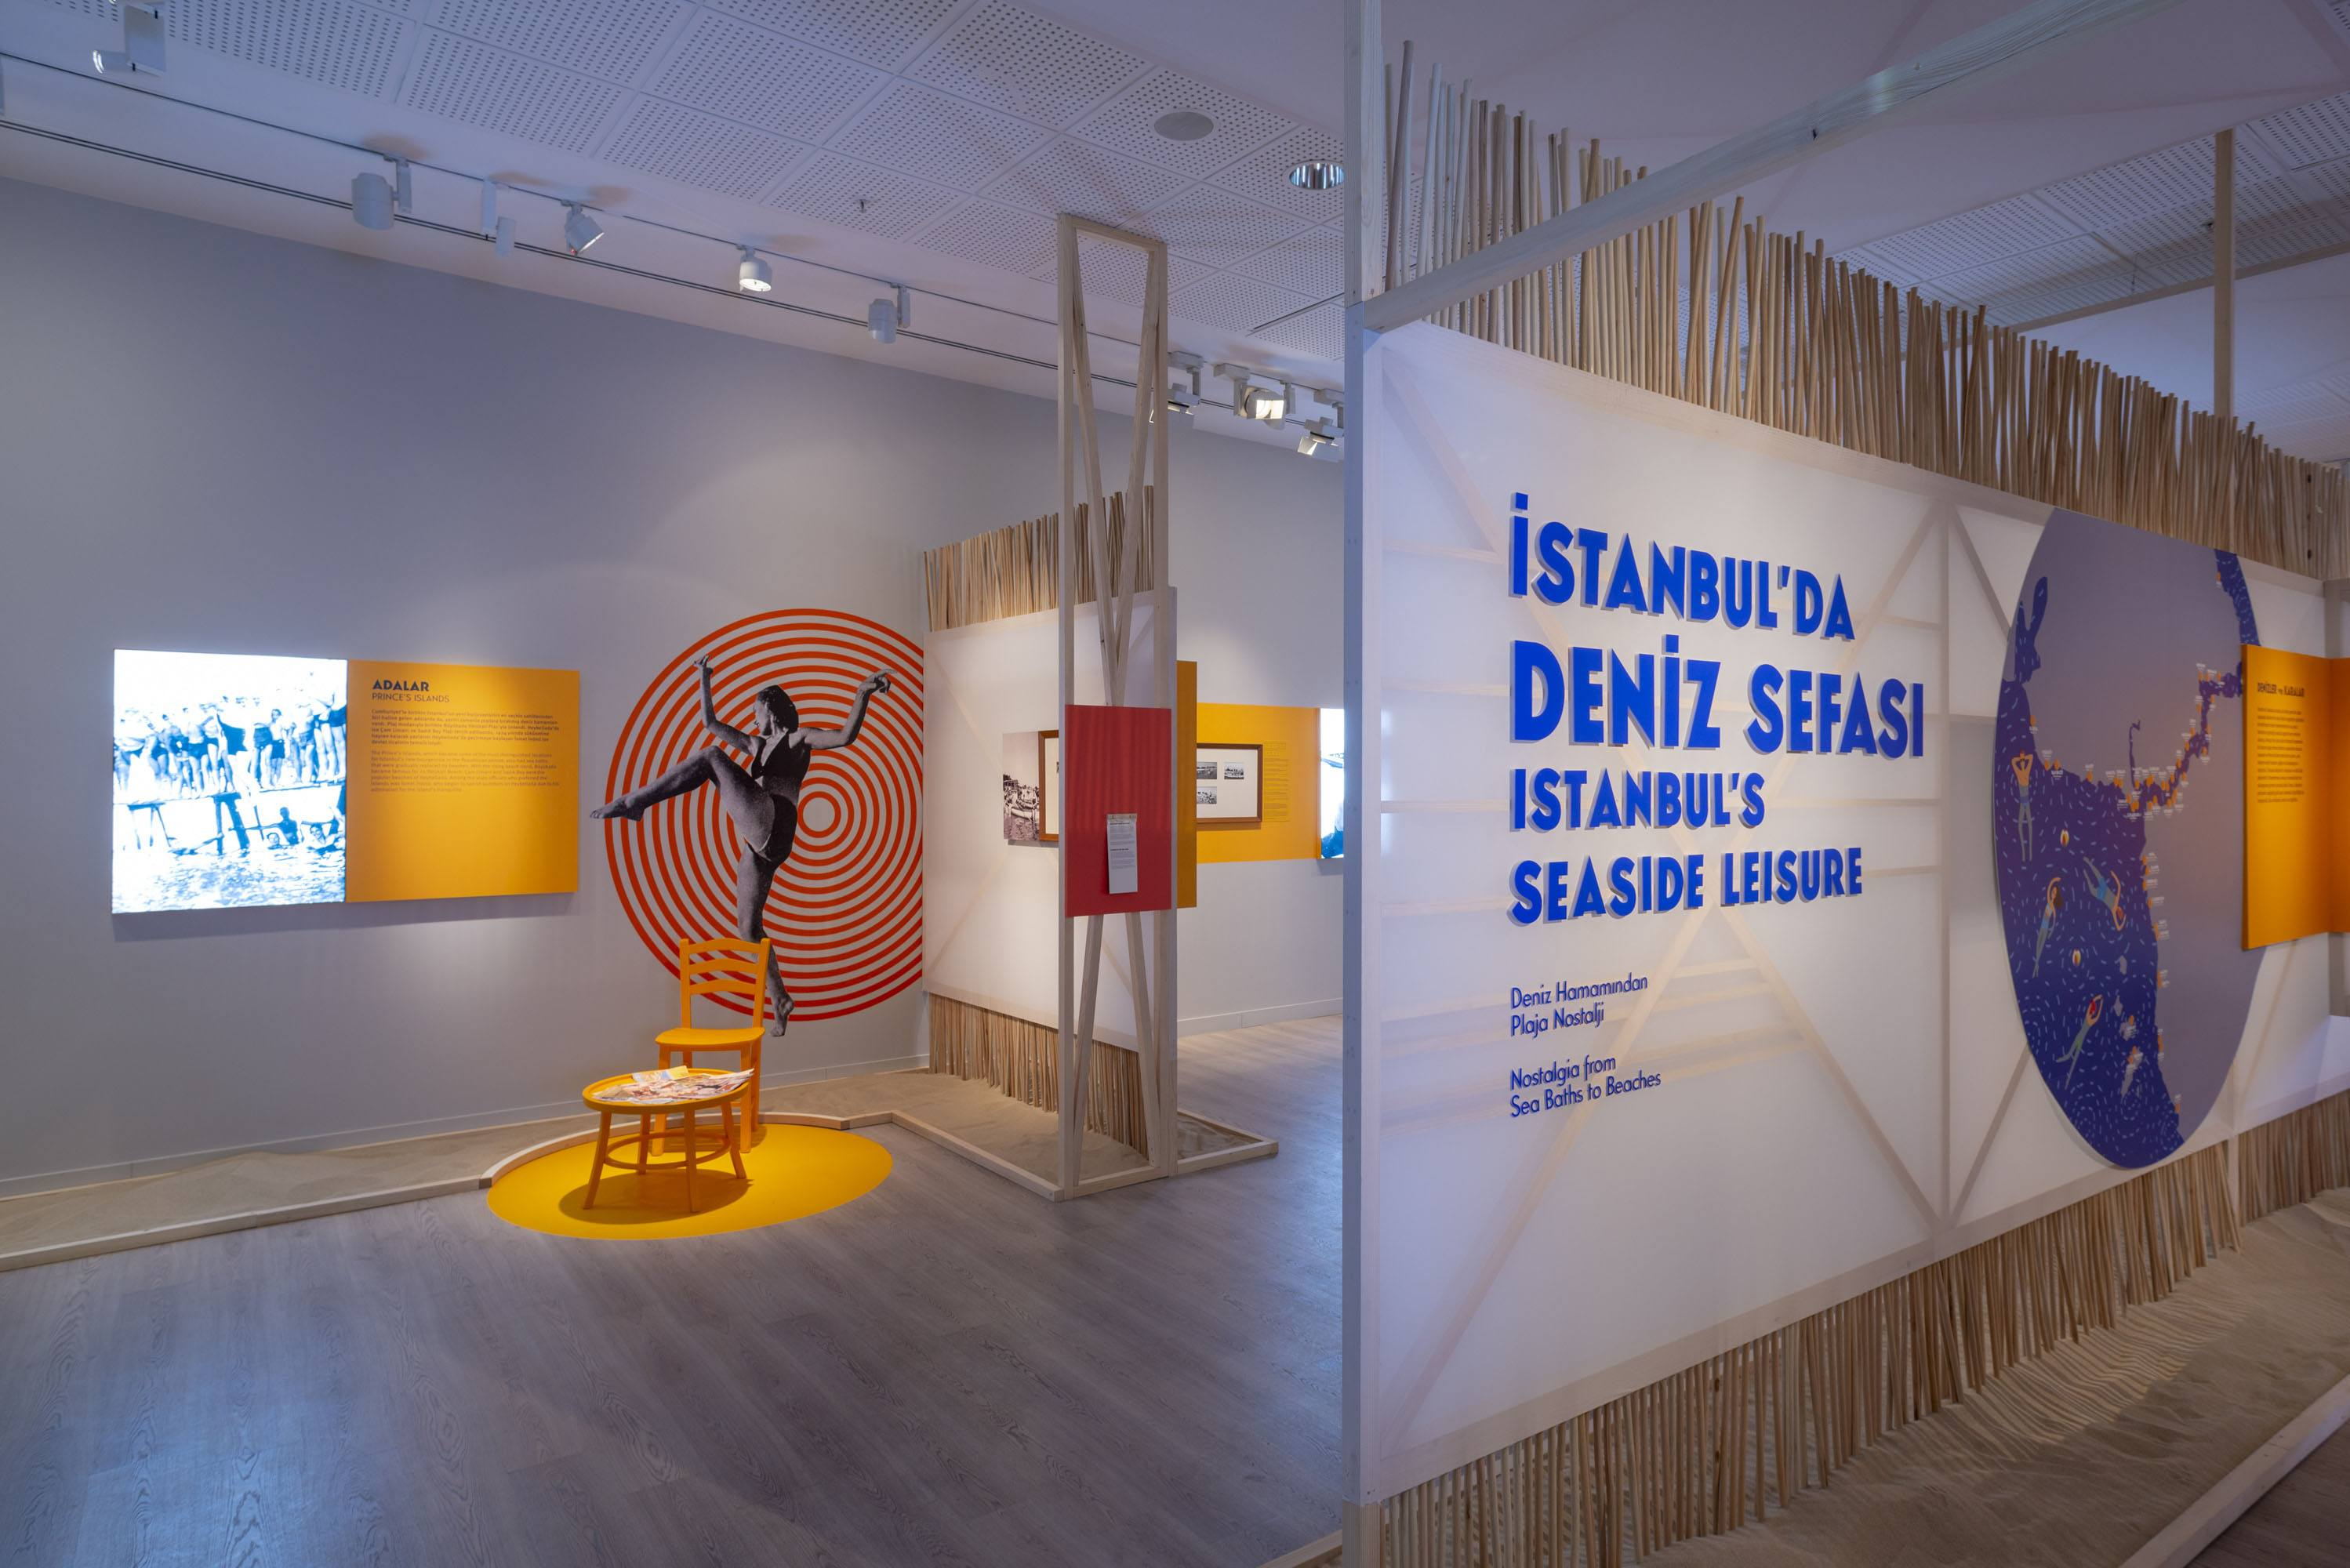 Istanbul's Seaside Leisure gallery 15